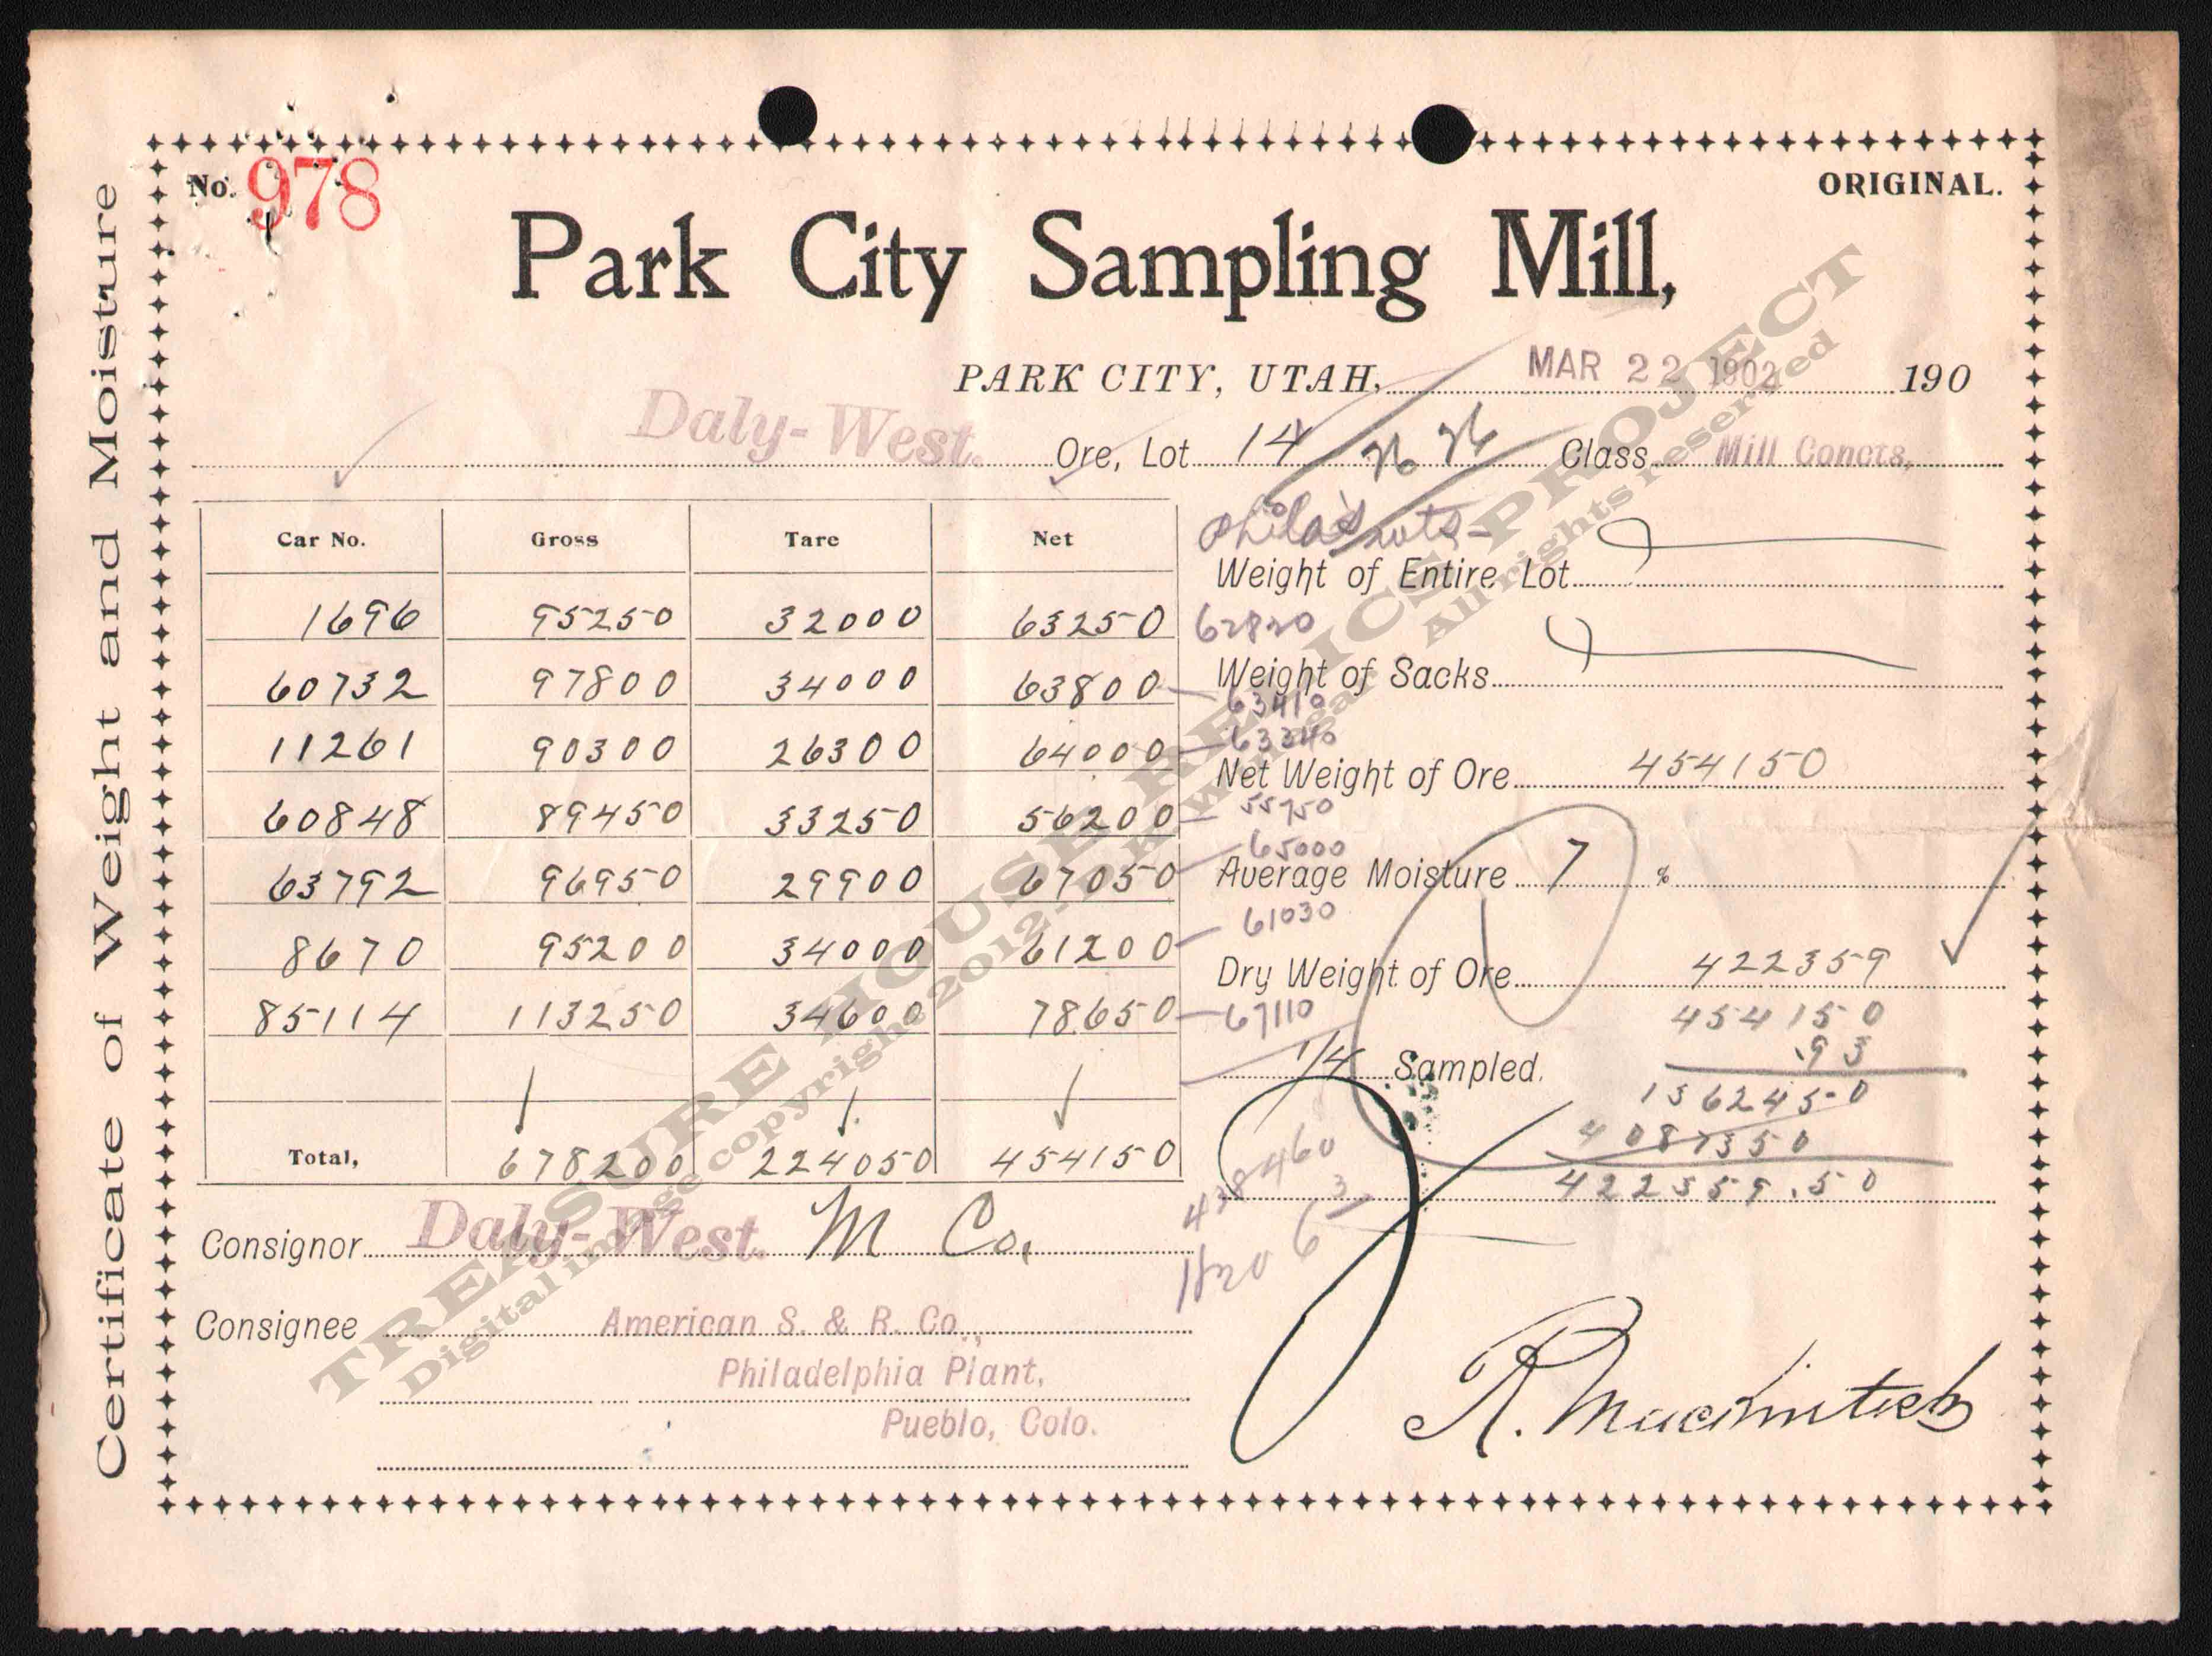 ASSAY_PARK_CITY_SAMPLING_MILL_R_MACINTOSH_1902_400_emboss.jpg